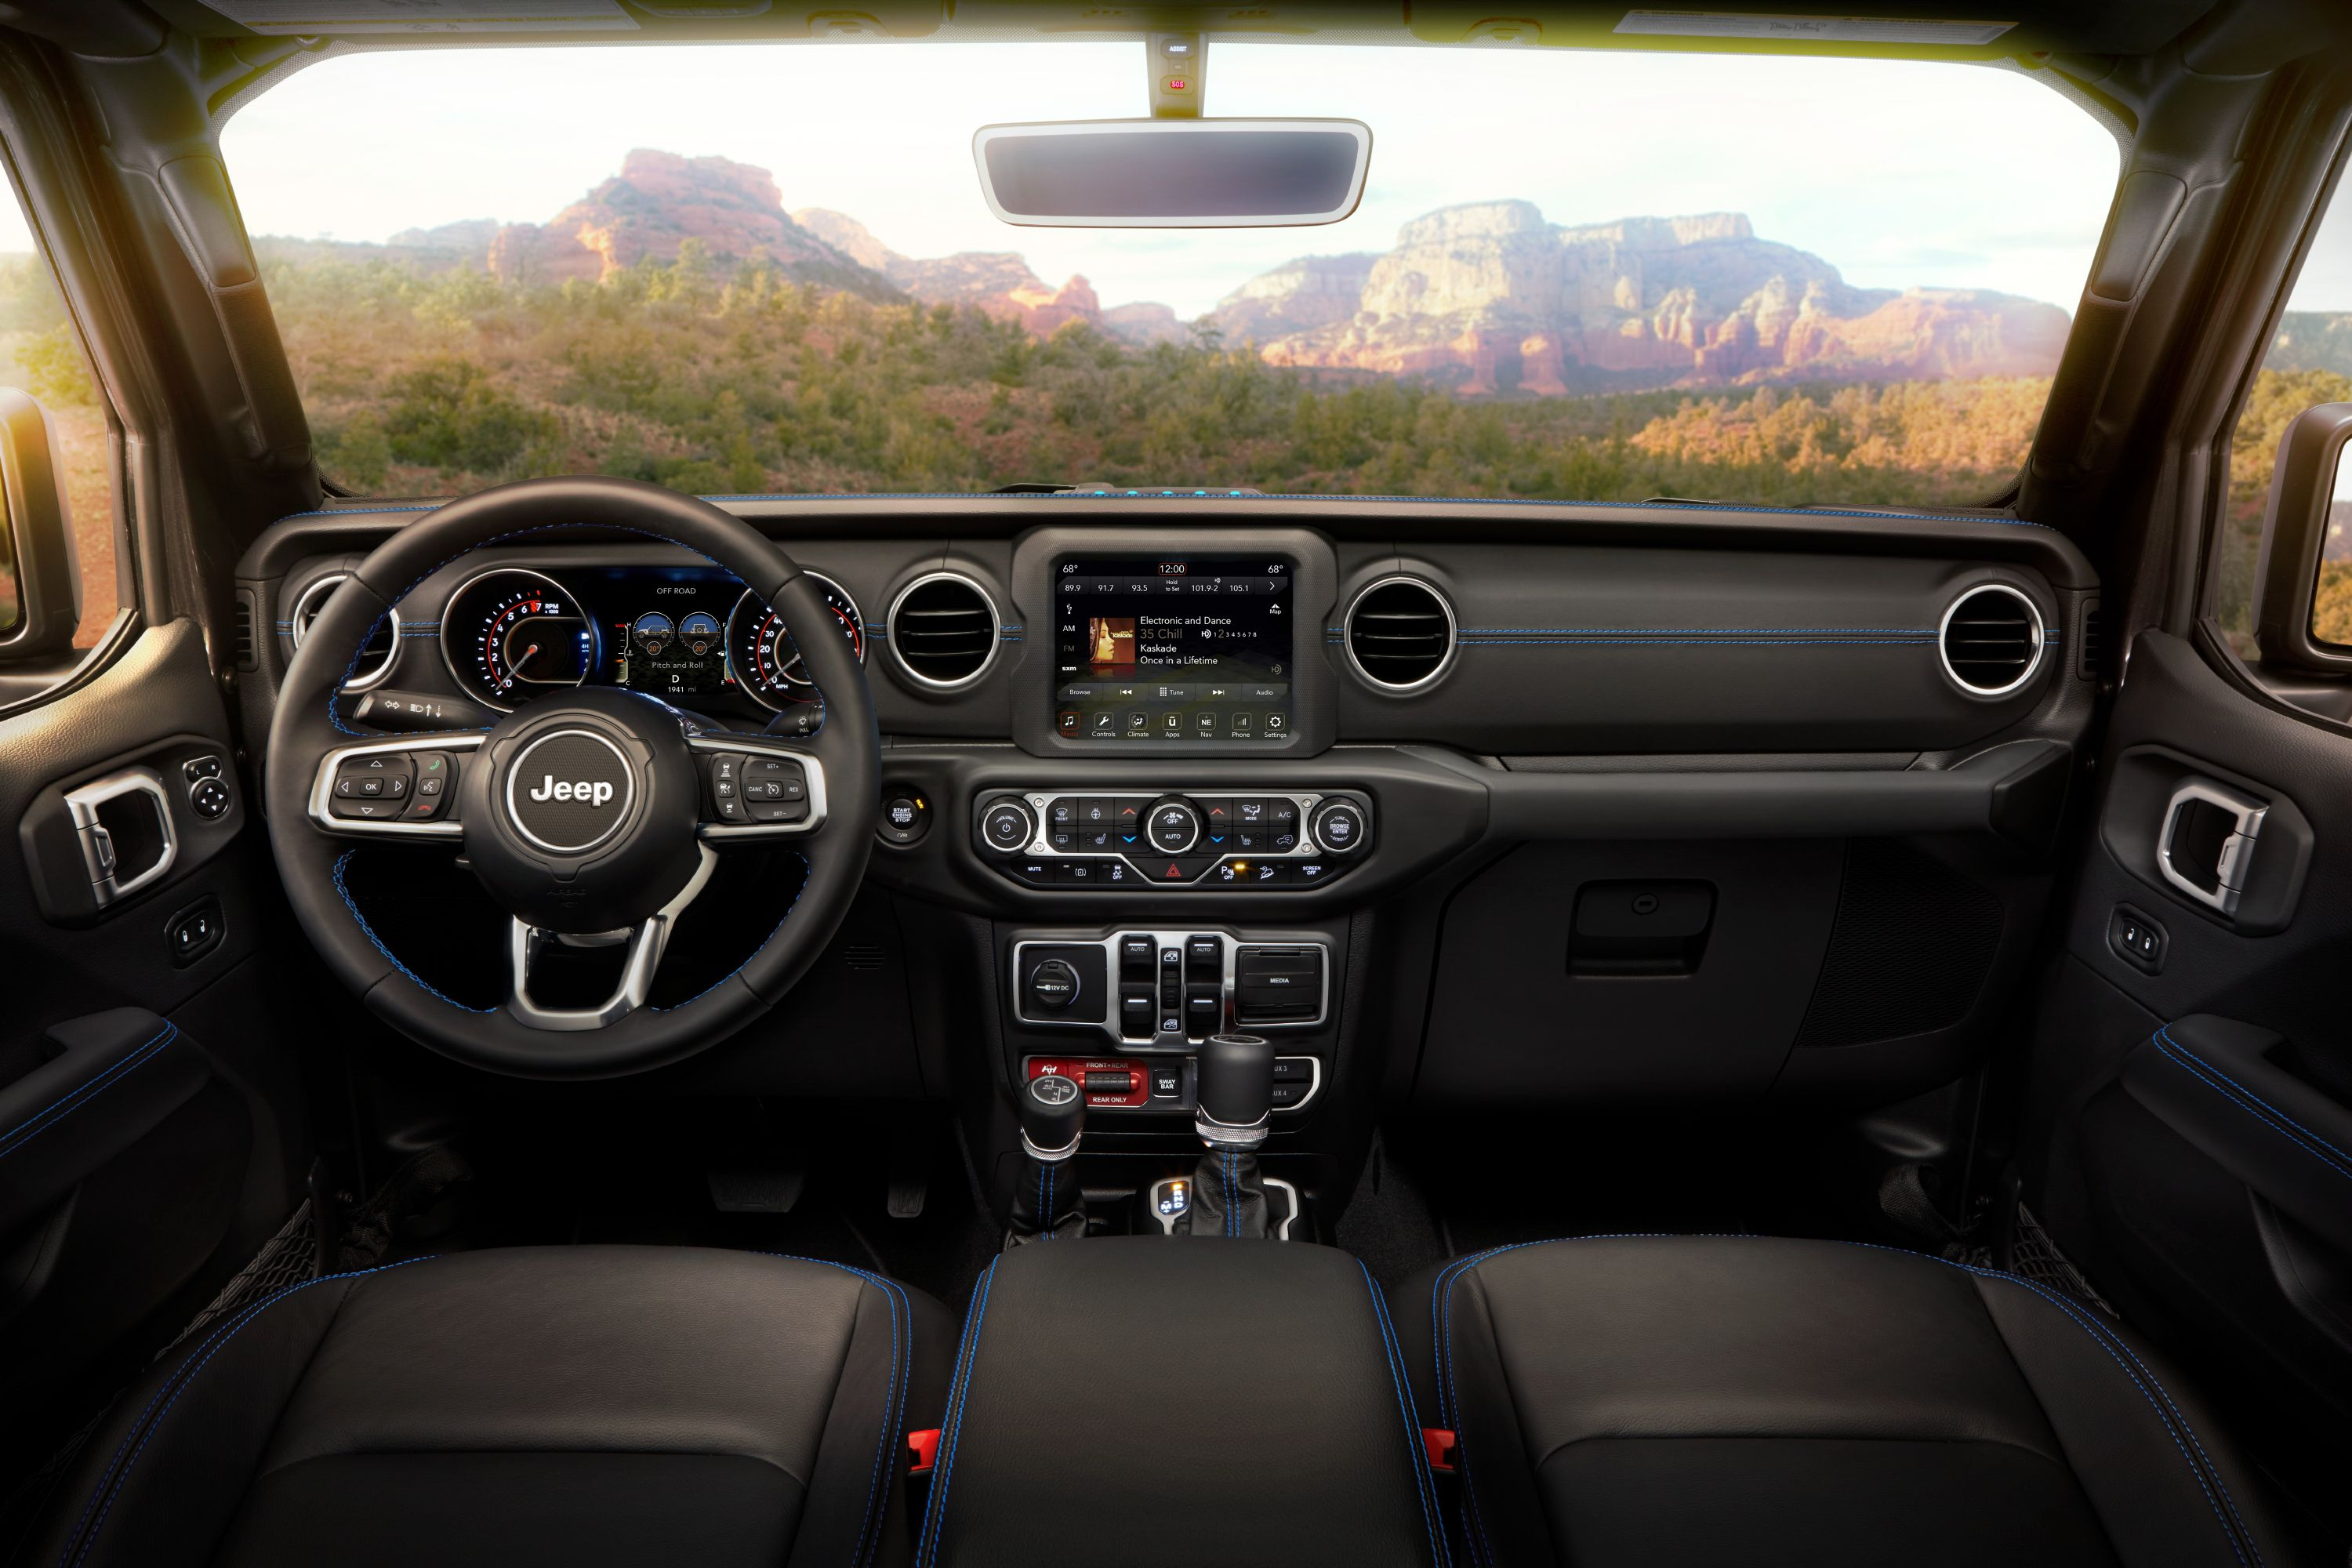 Latest technologies ⚡ of the 2021 jeep wrangler: 2021 Jeep Wrangler 4xe Is A Hybrid Built For Serious Off Roading